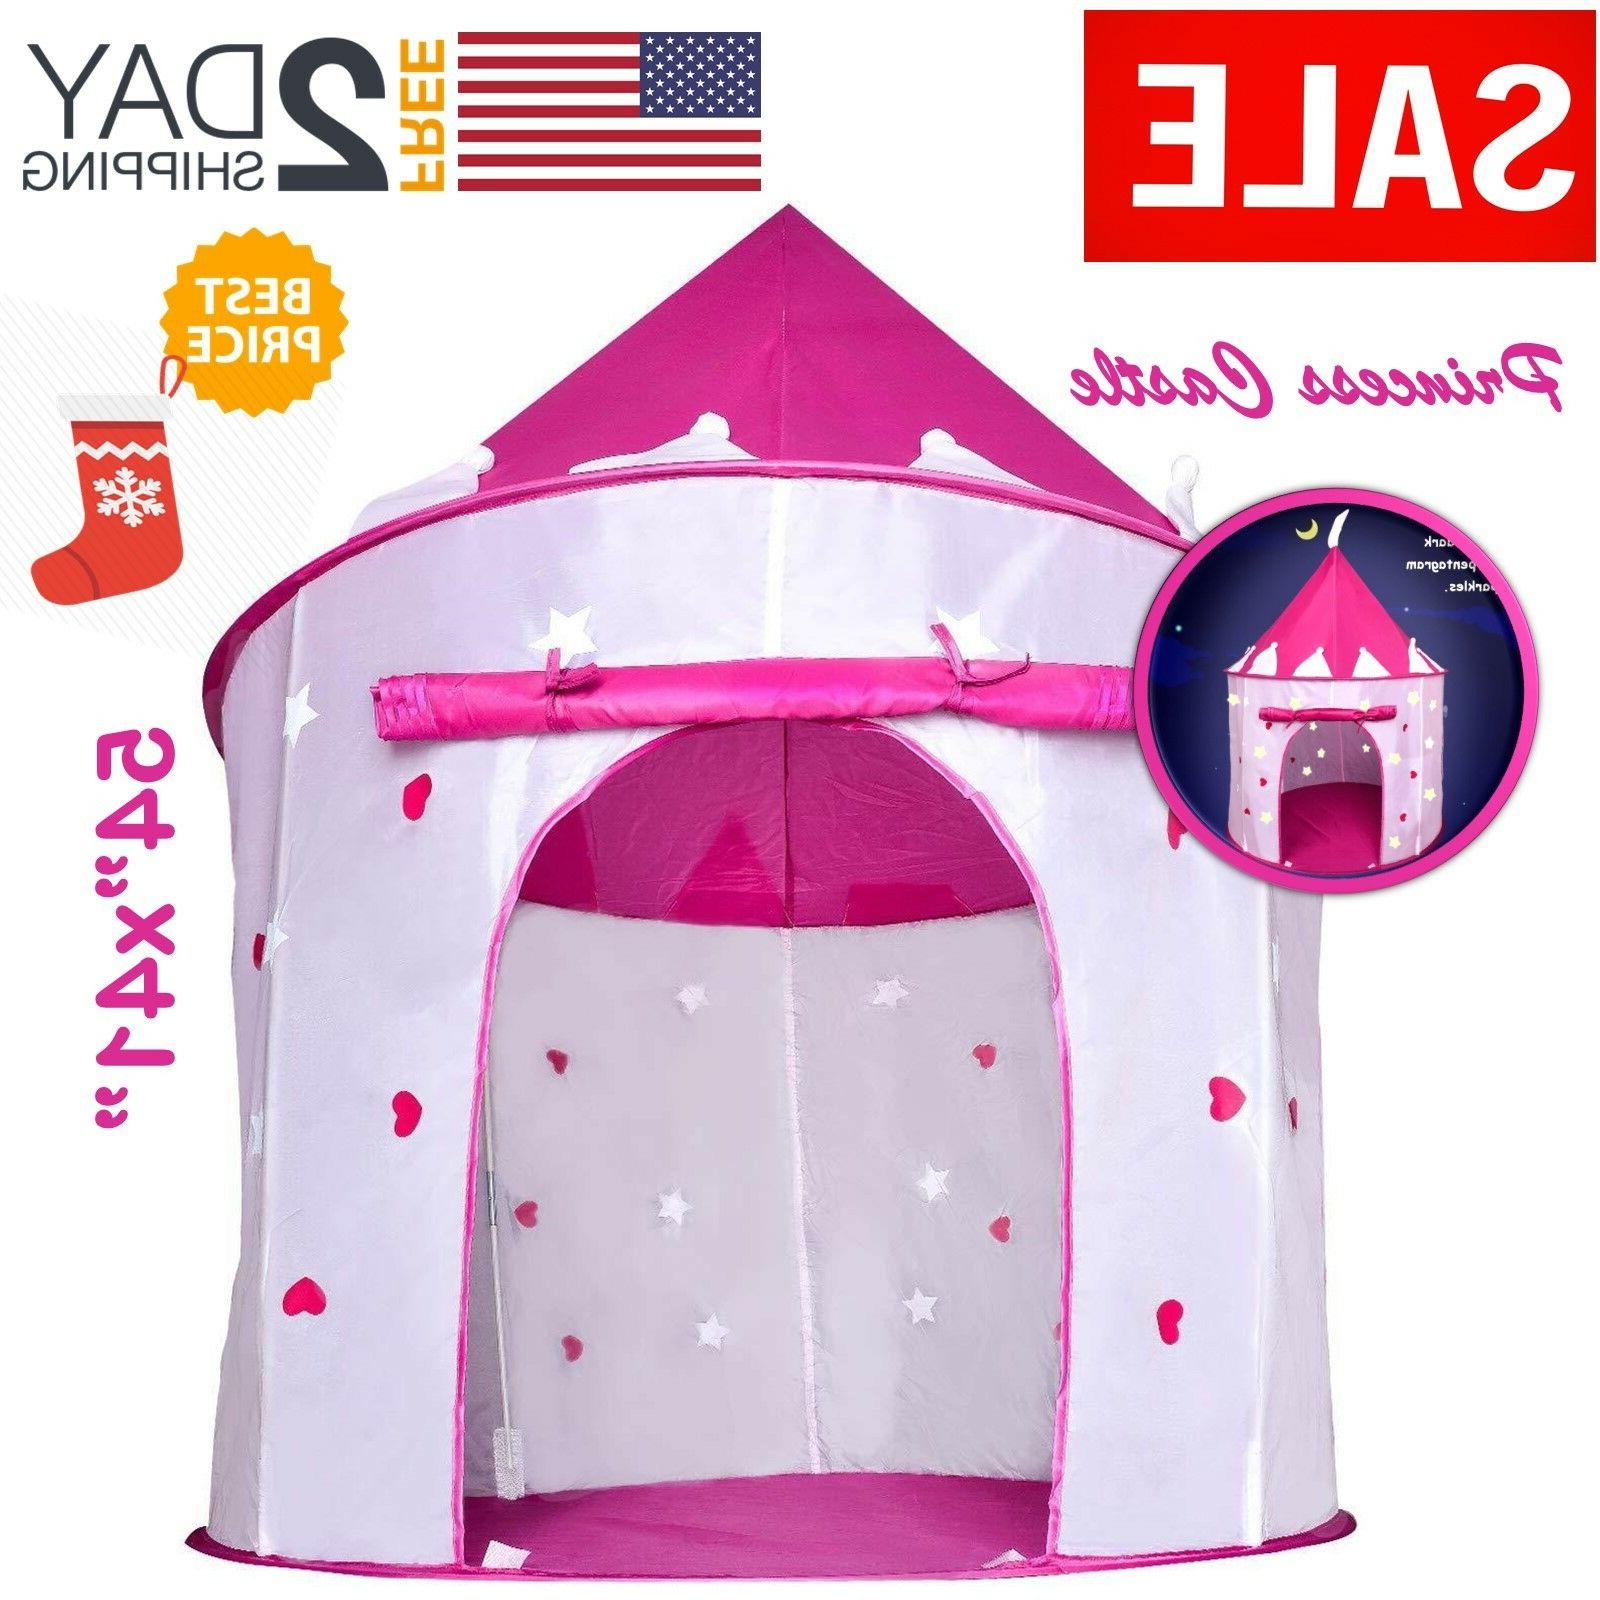 Toys For Girls Kids Children Play Tent House for 3 4 5 6 7 8